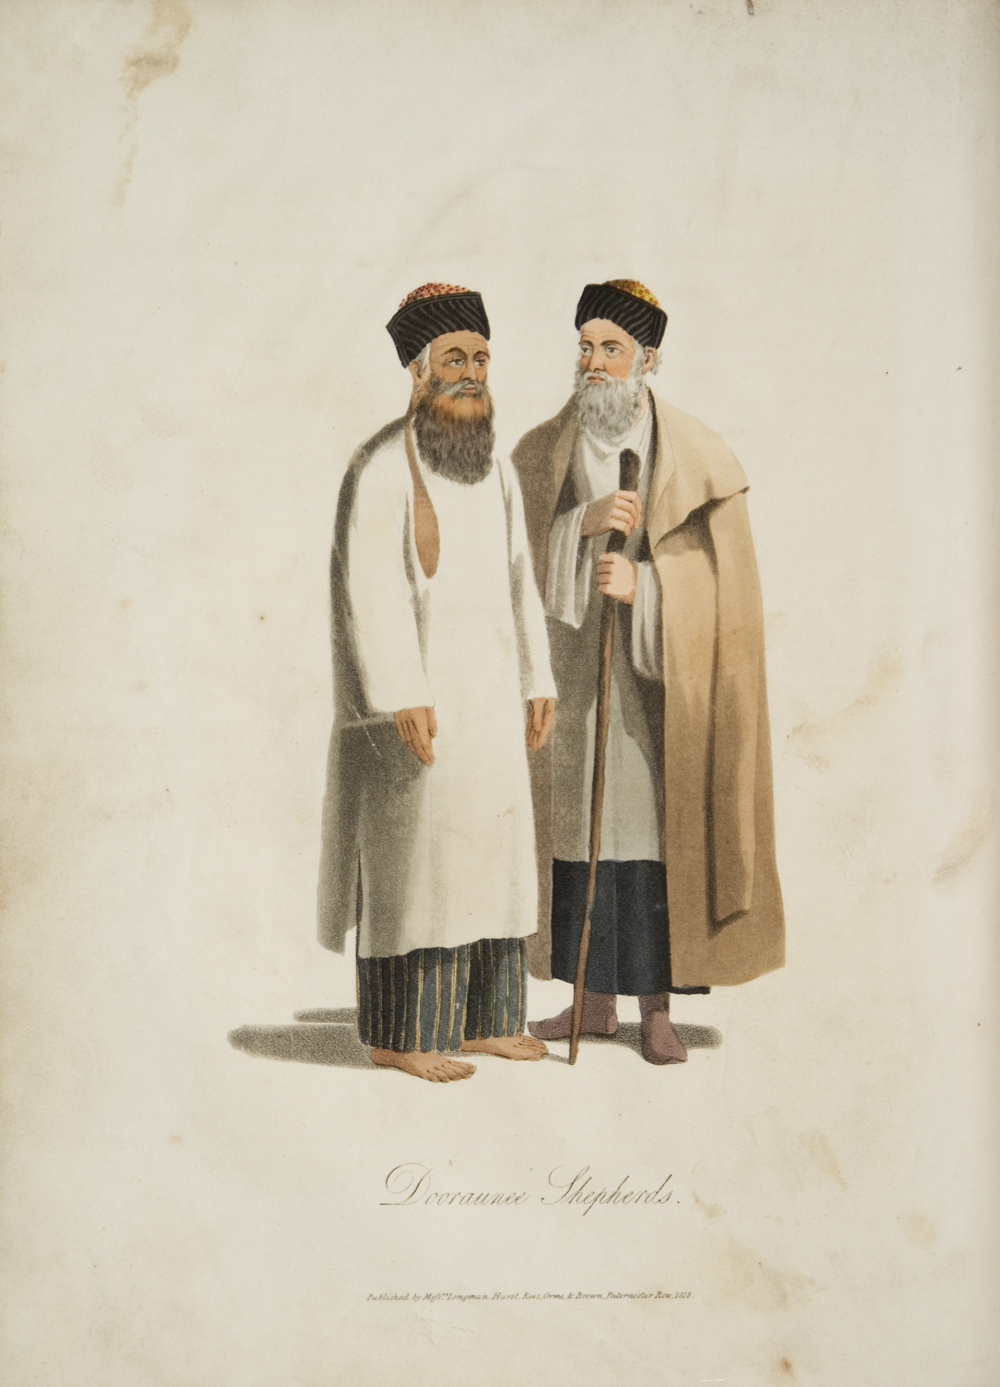 """Dooraunee Shepherds."" The man to the left is wearing a kosai. Aquatint, from Mountstuart Elphinstone 1815,  Plate II, opp. p. 239."